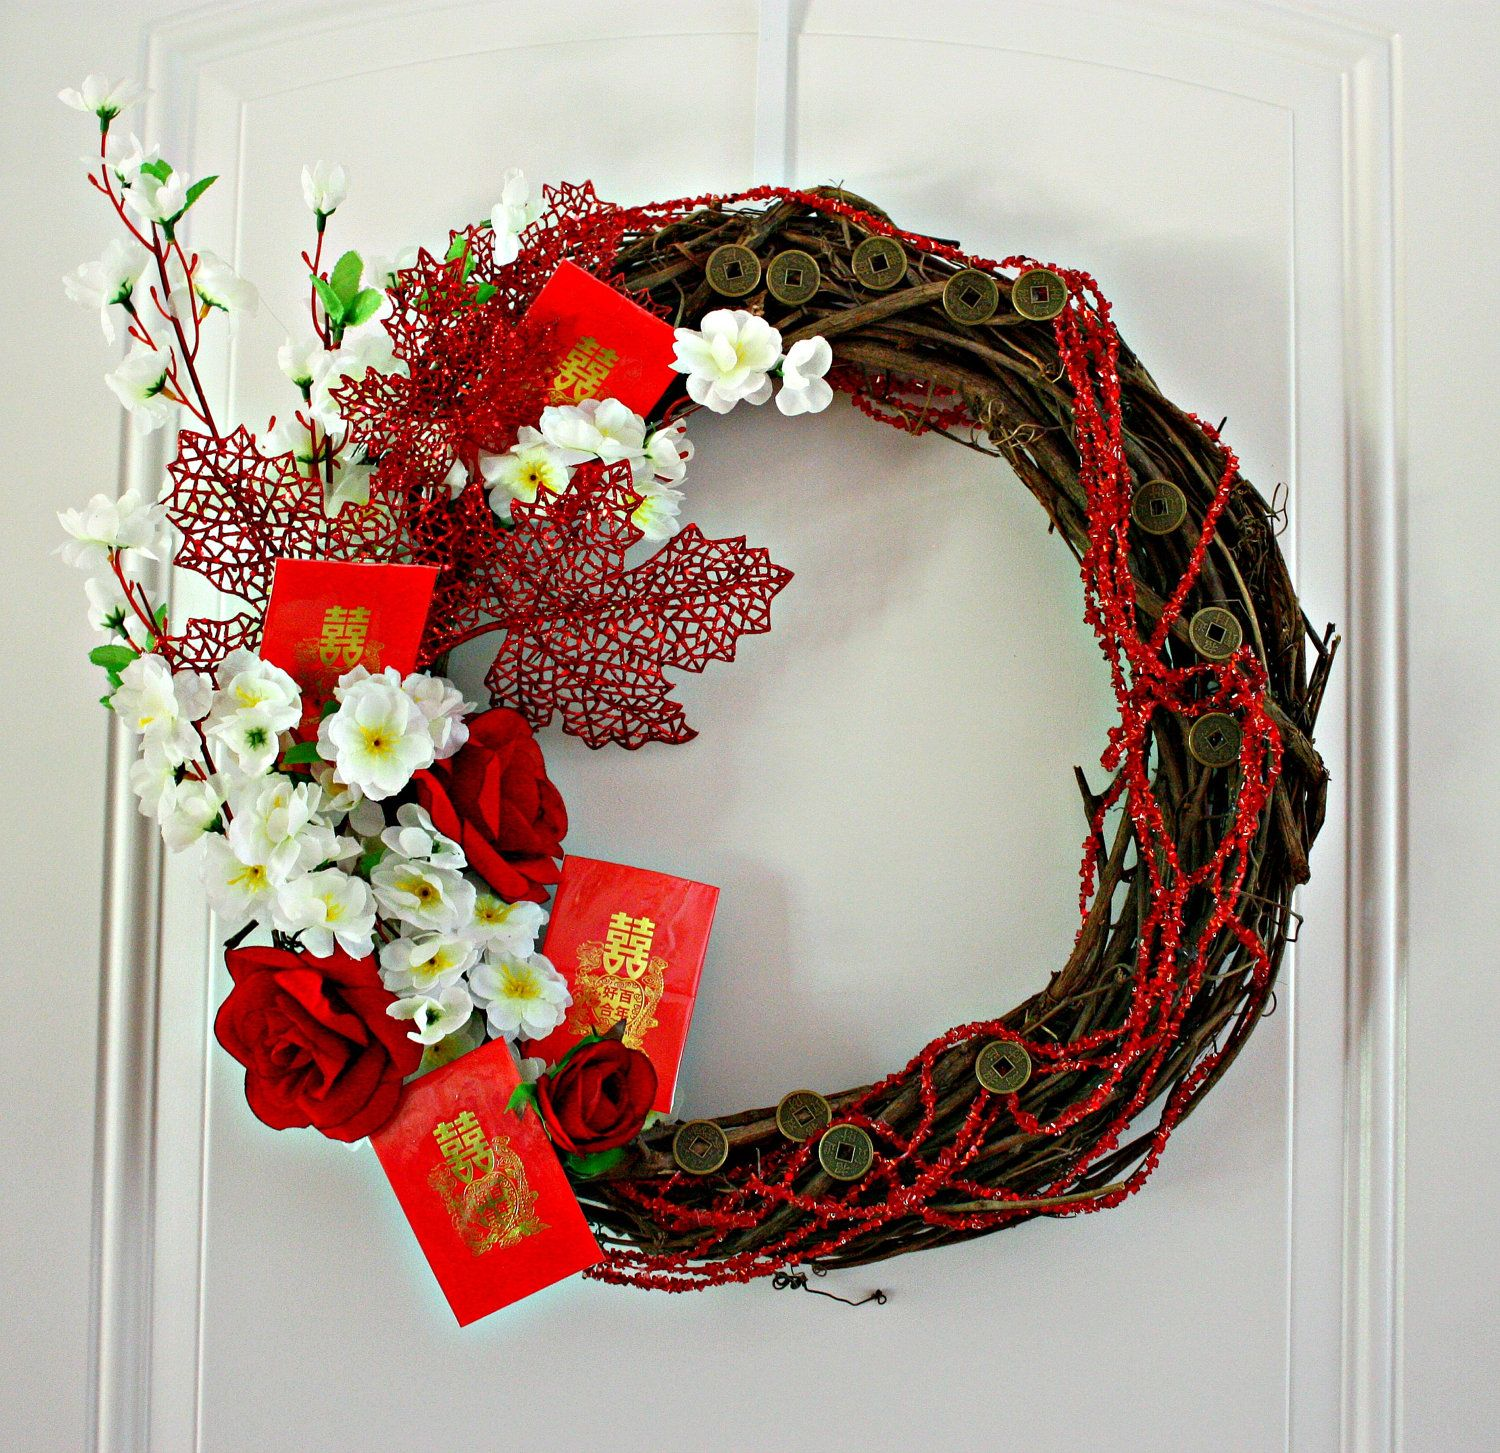 Cny Home Decor: Celebrate Chinese Moon Festival